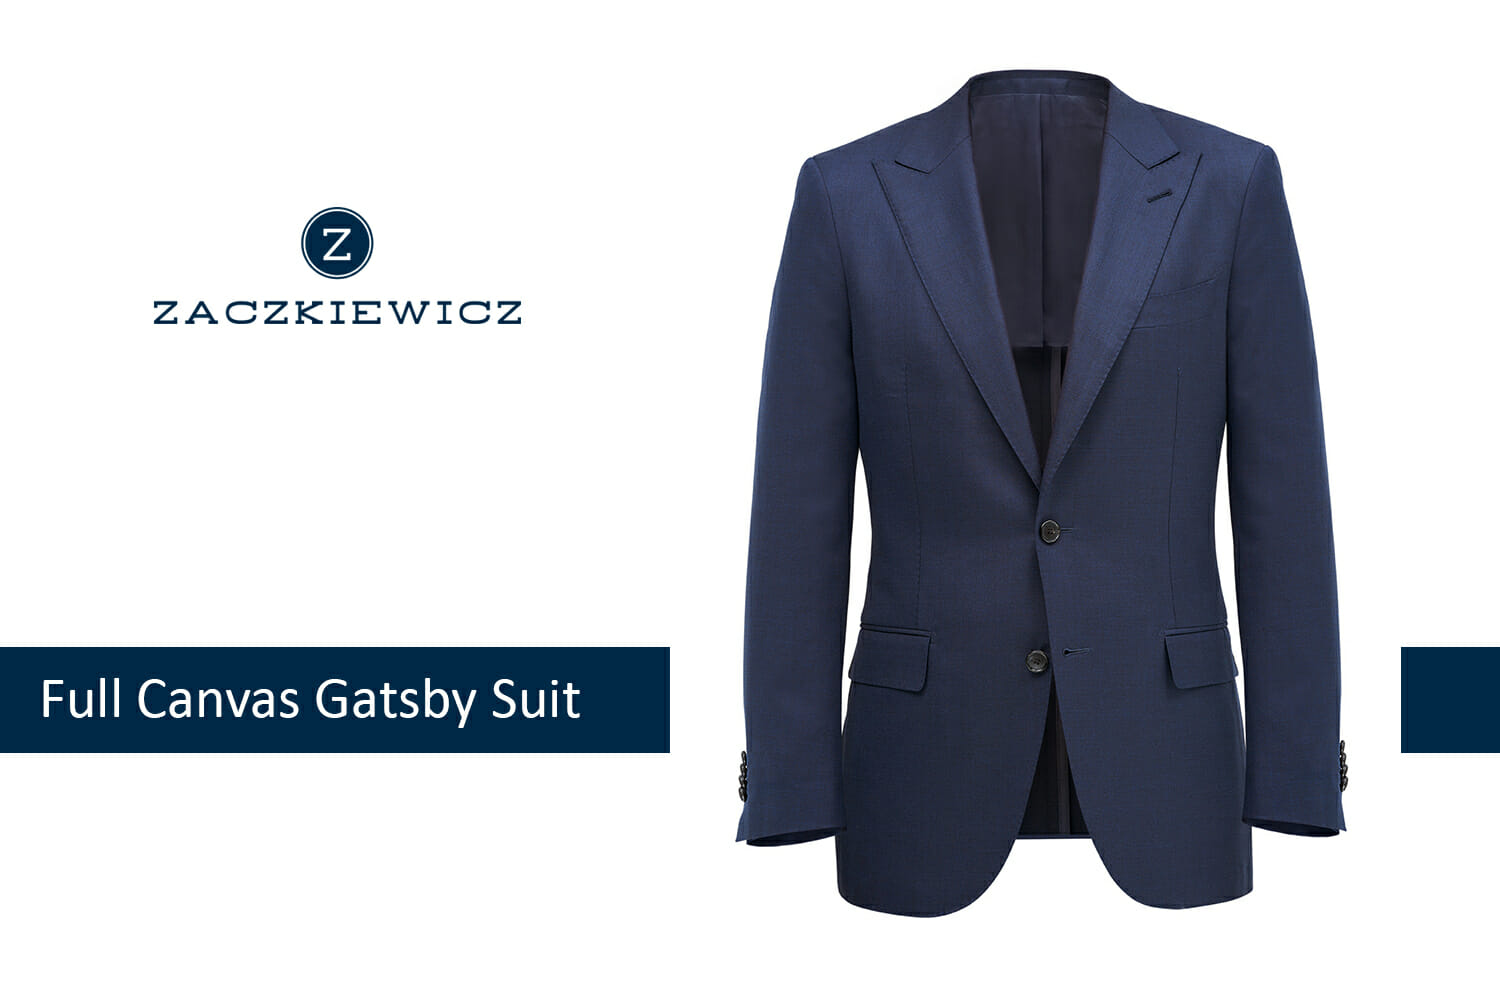 full-canvas-gatsby-suit